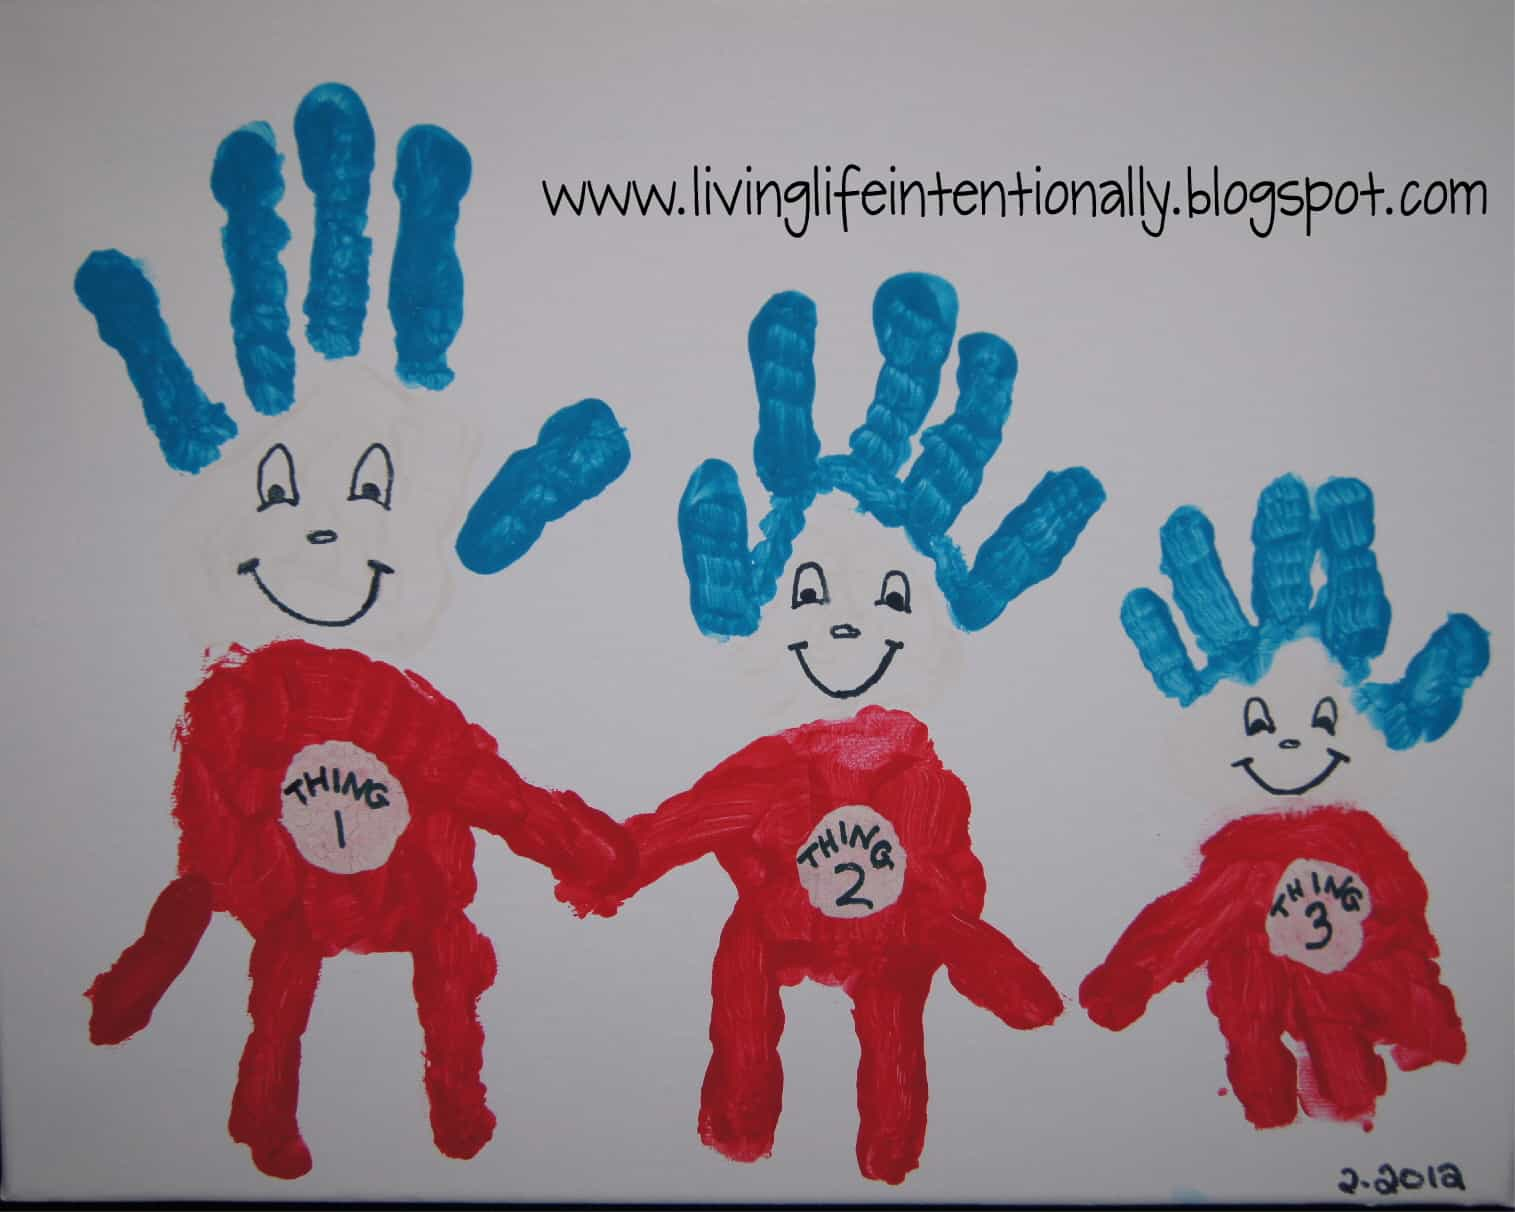 Dr seuss inspired thing 1, thing 2 painting